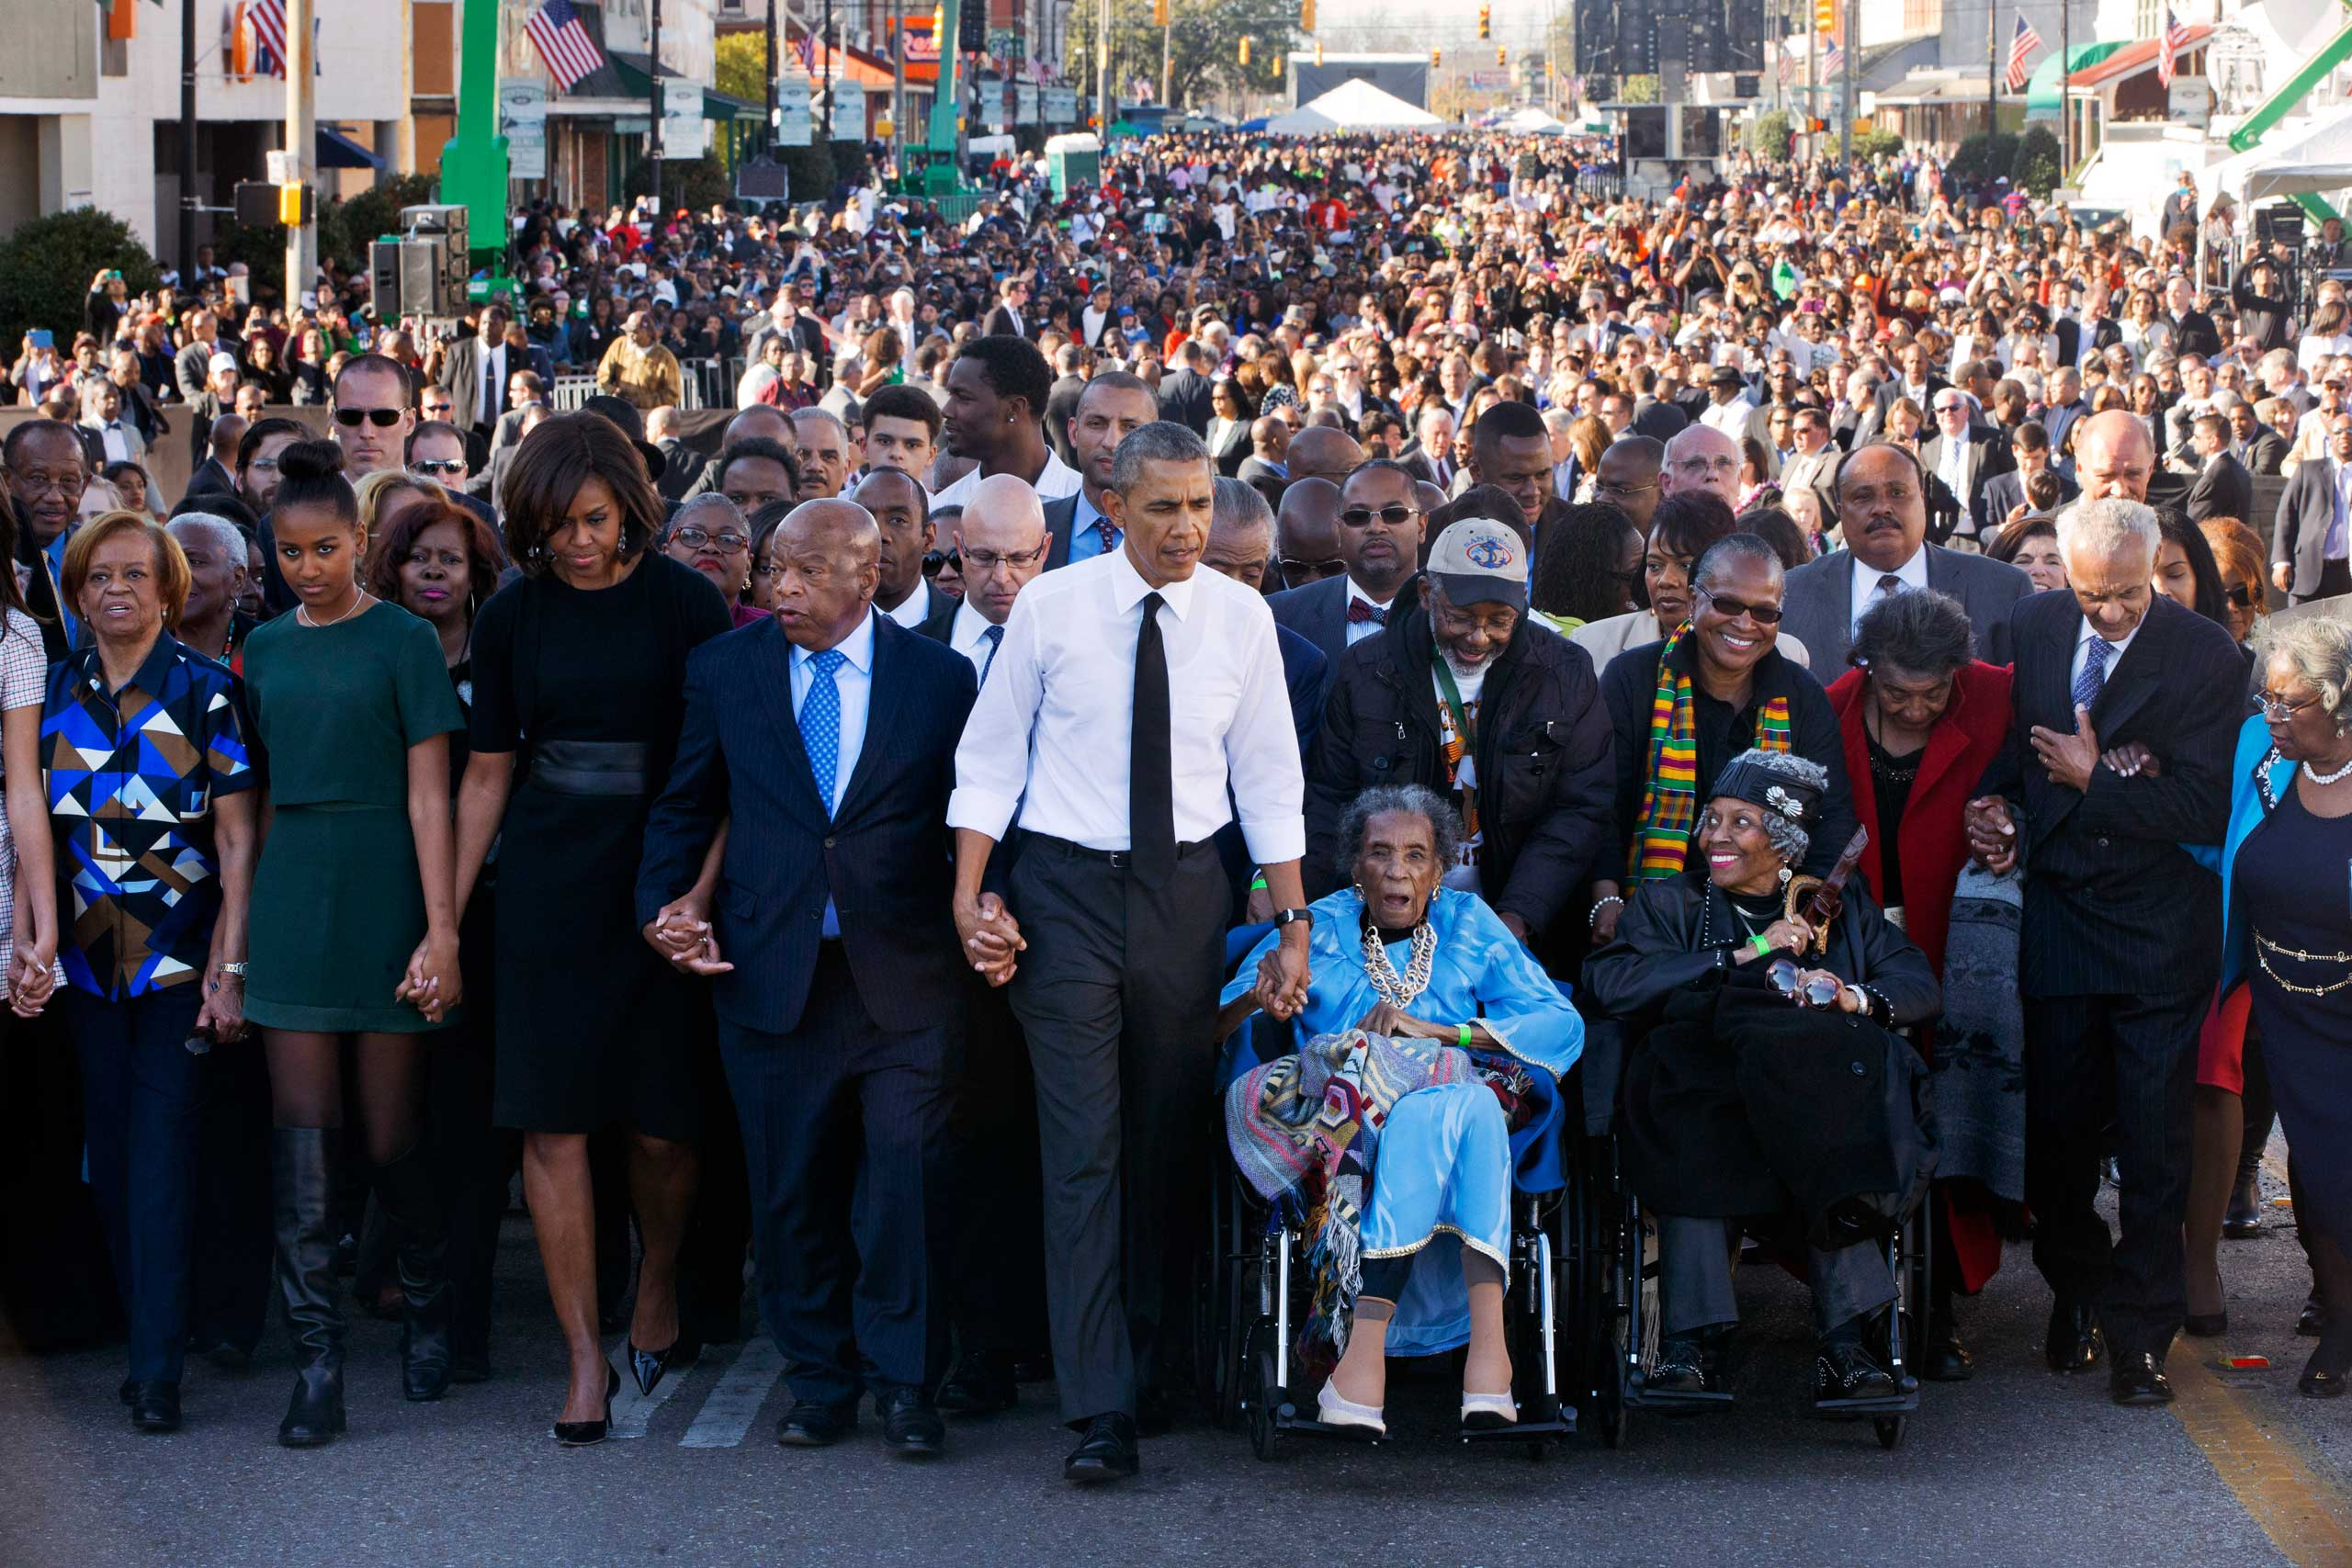 """President Barack Obama, center, walks as he holds hands with Amelia Boynton Robinson and Rep. John Lewis, who were beaten during 'Bloody Sunday,' as they and the first family walk across the Edmund Pettus Bridge on the 50th anniversary of """"Bloody Sunday"""" in Selma, Ala. on March 7, 2015."""